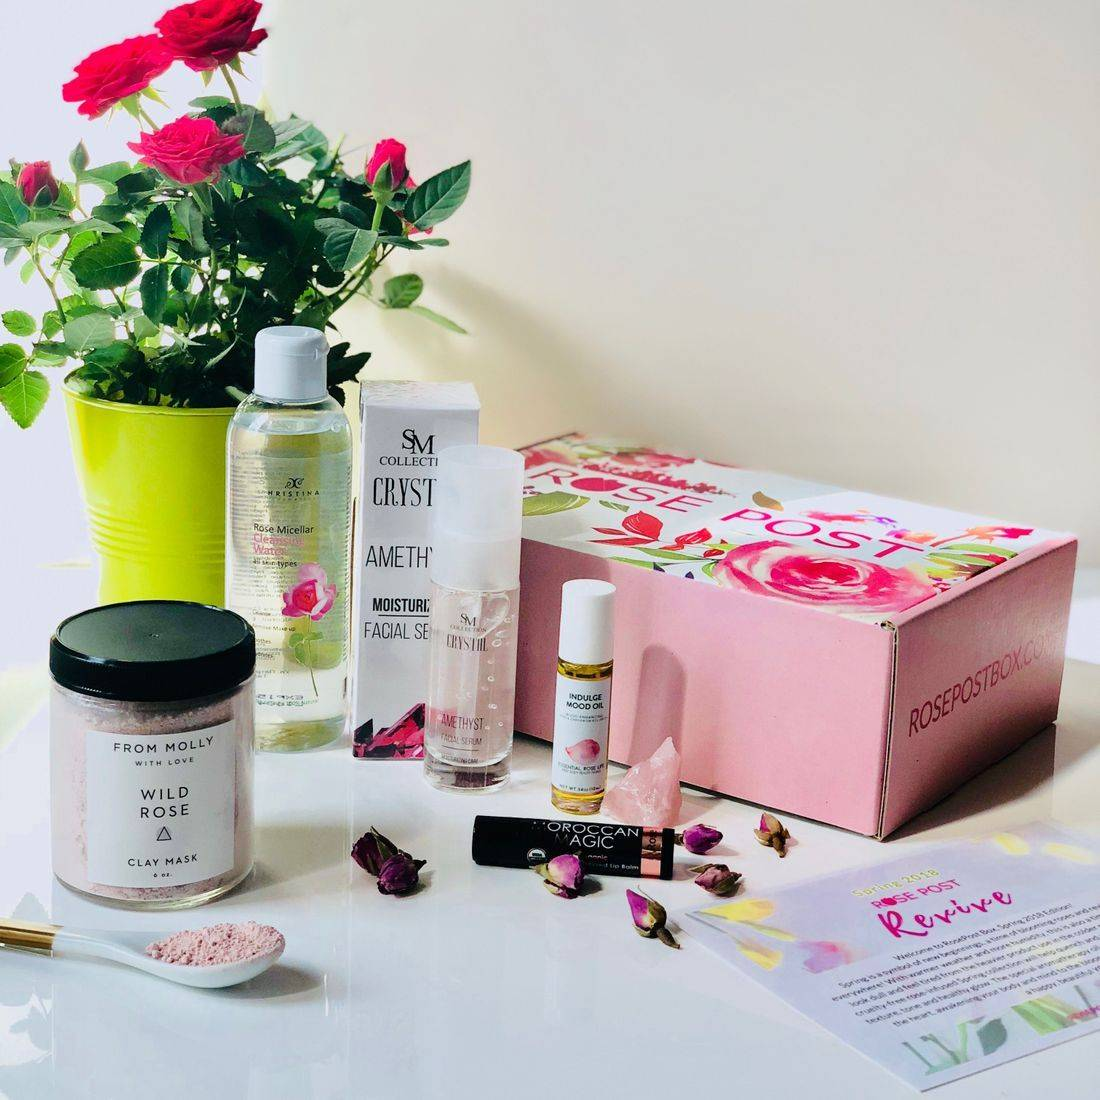 RosePost Box, Green Beauty Box, Spring '18 RosePost Box, Rose-infused Beauty, clean beauty, rose oil skincare